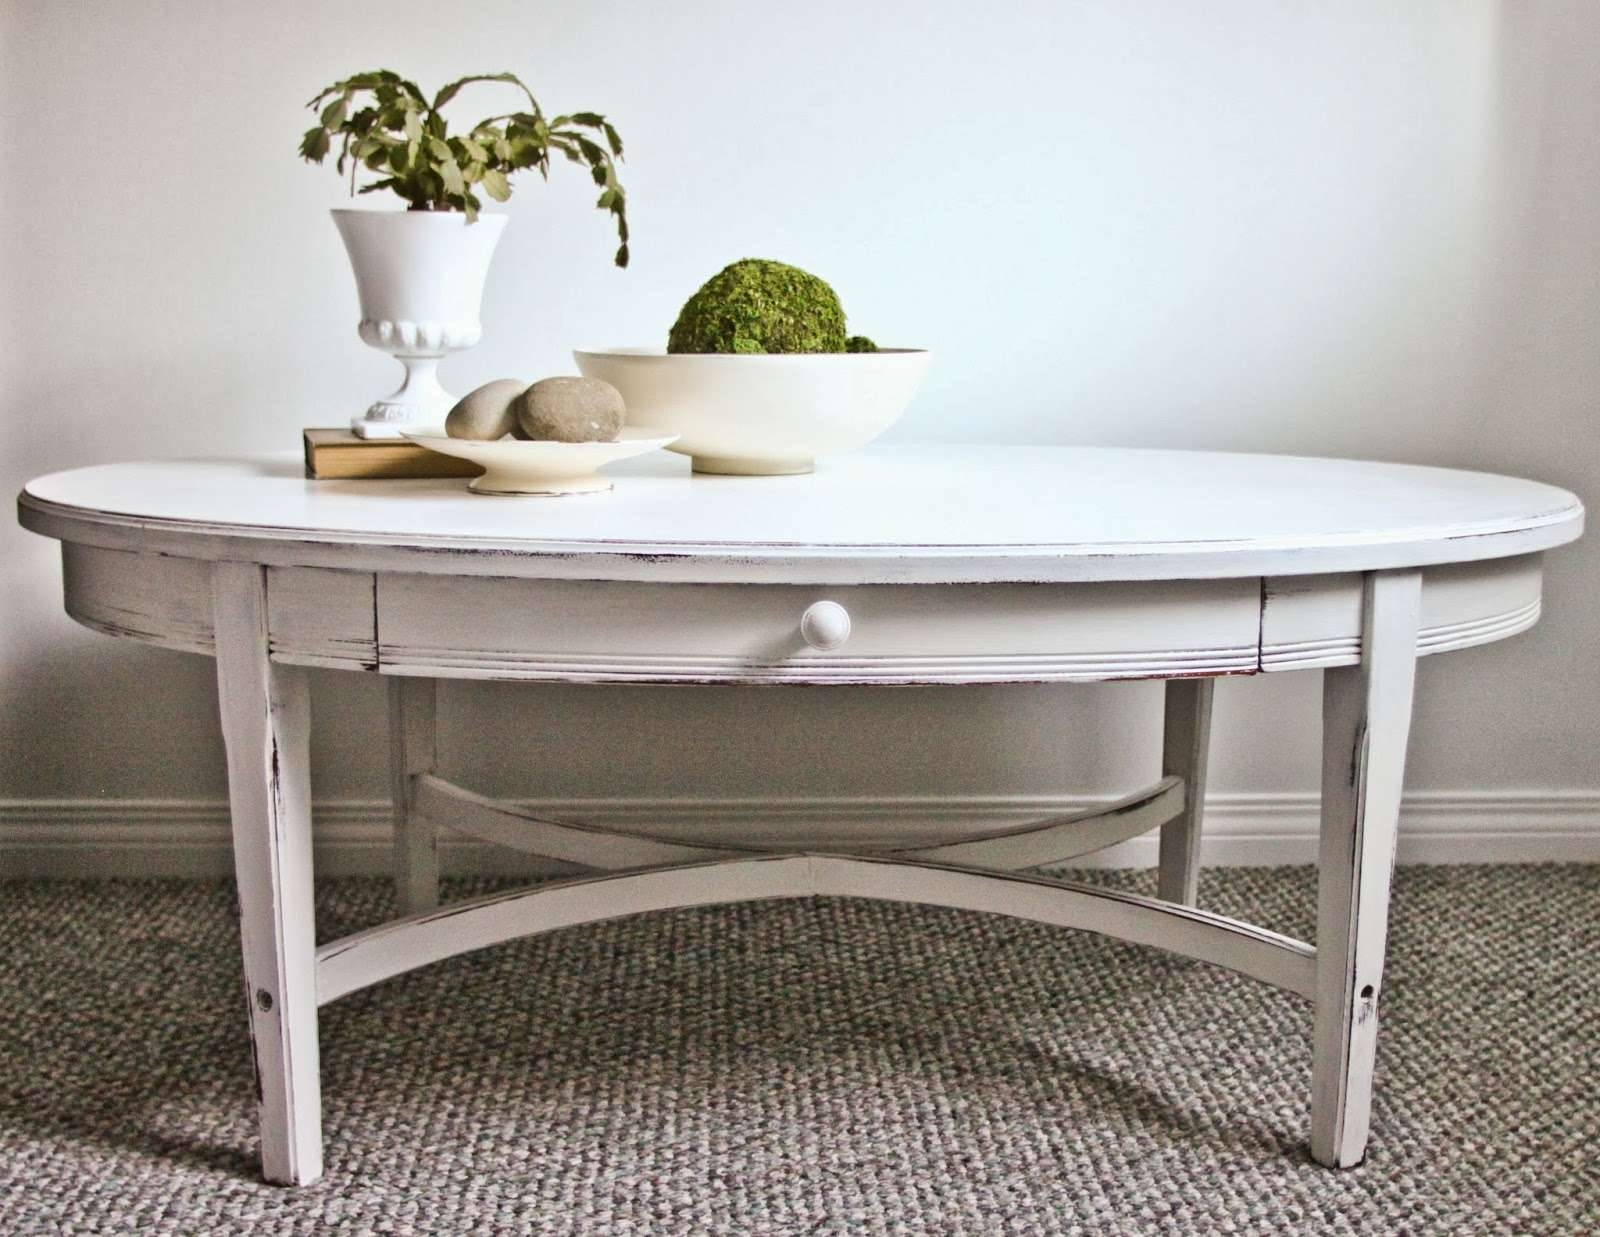 Sweet Tree Furniture: Oval Coffee Table With Drawer For Popular Oval White Coffee Tables (View 18 of 20)